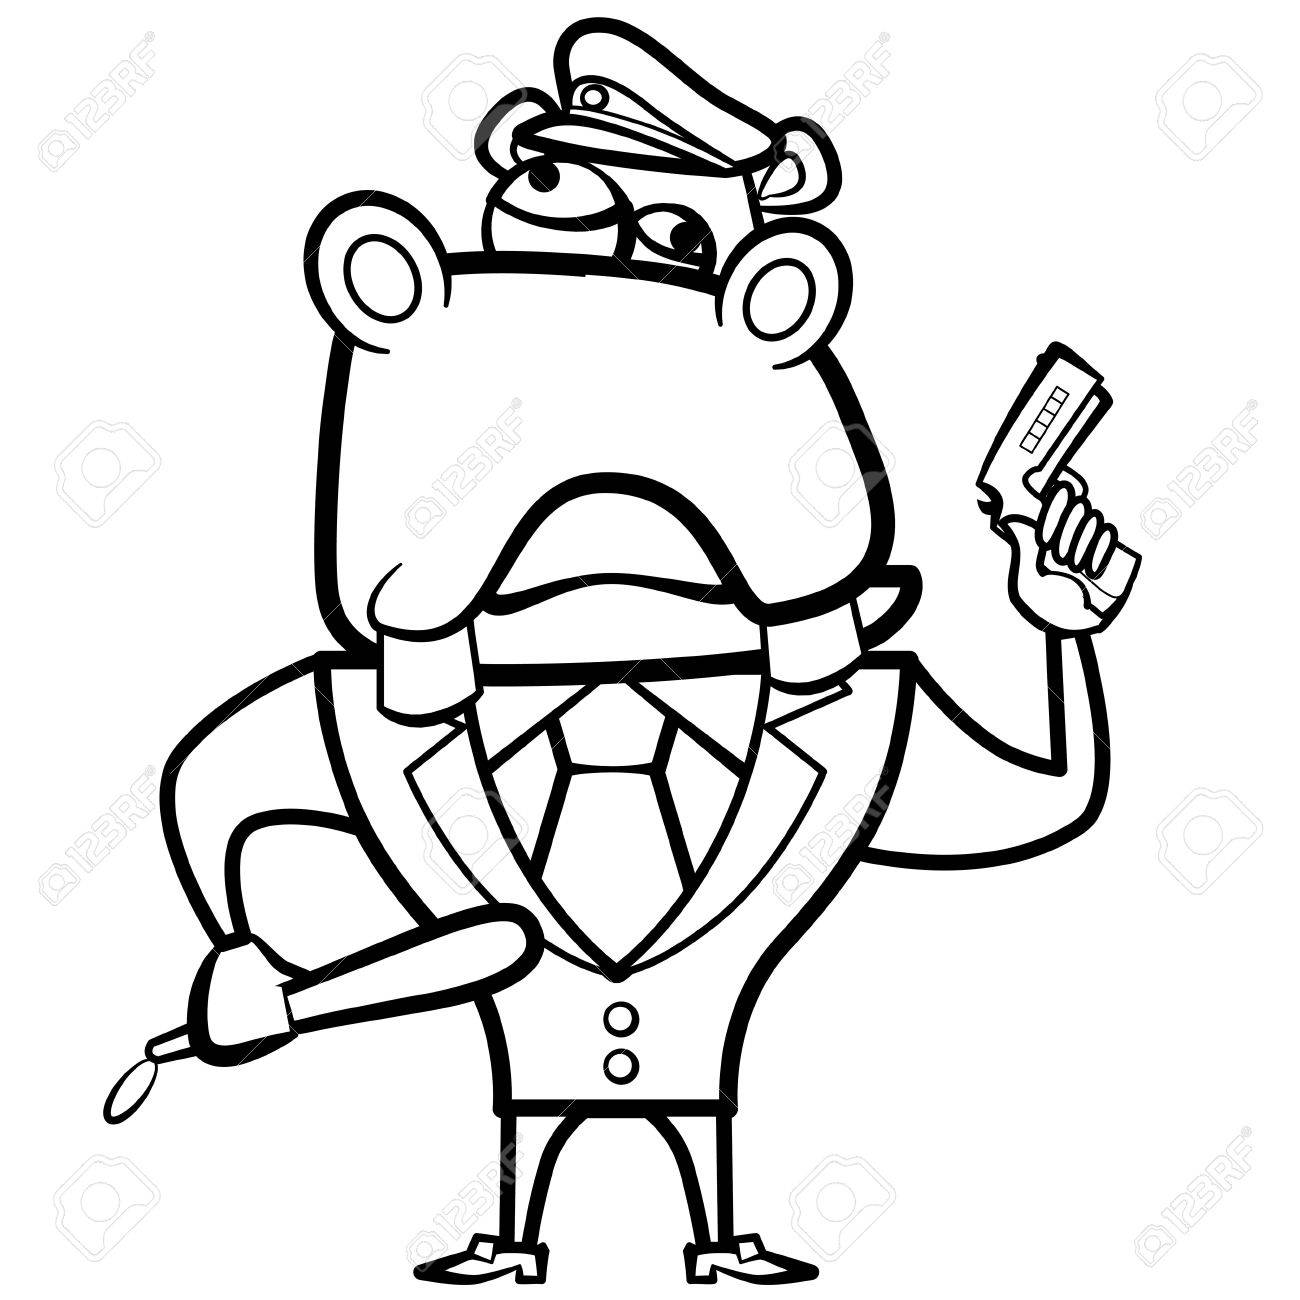 coloring cartoon hippo police officer with gun royalty free